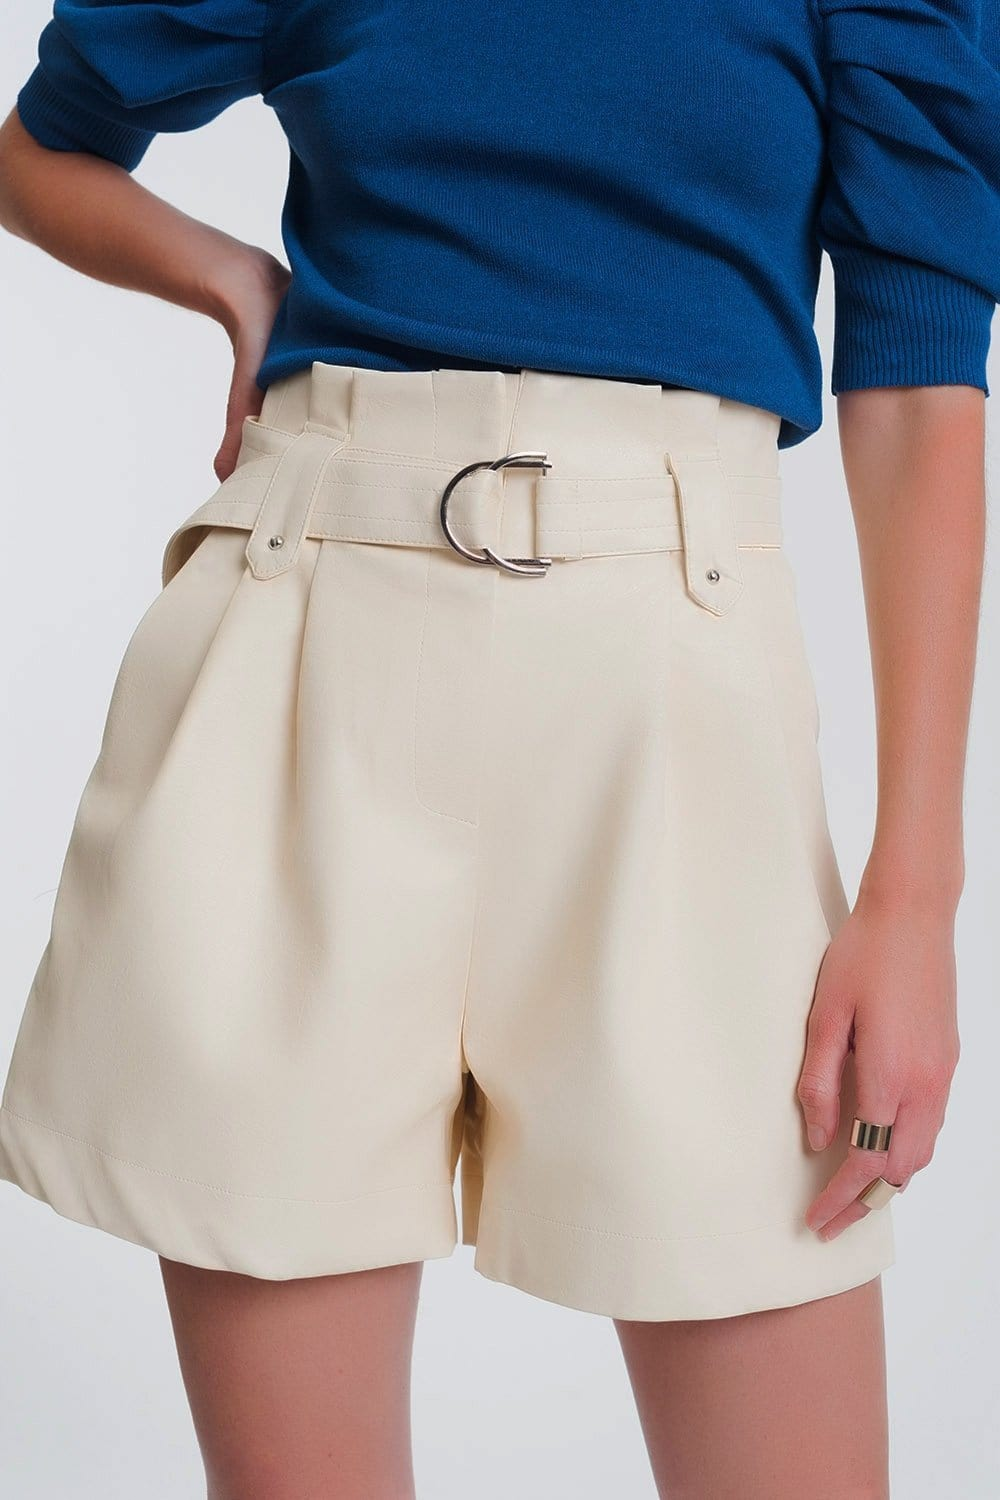 Leather look short with pockets and paperbag waist - Himelhoch's